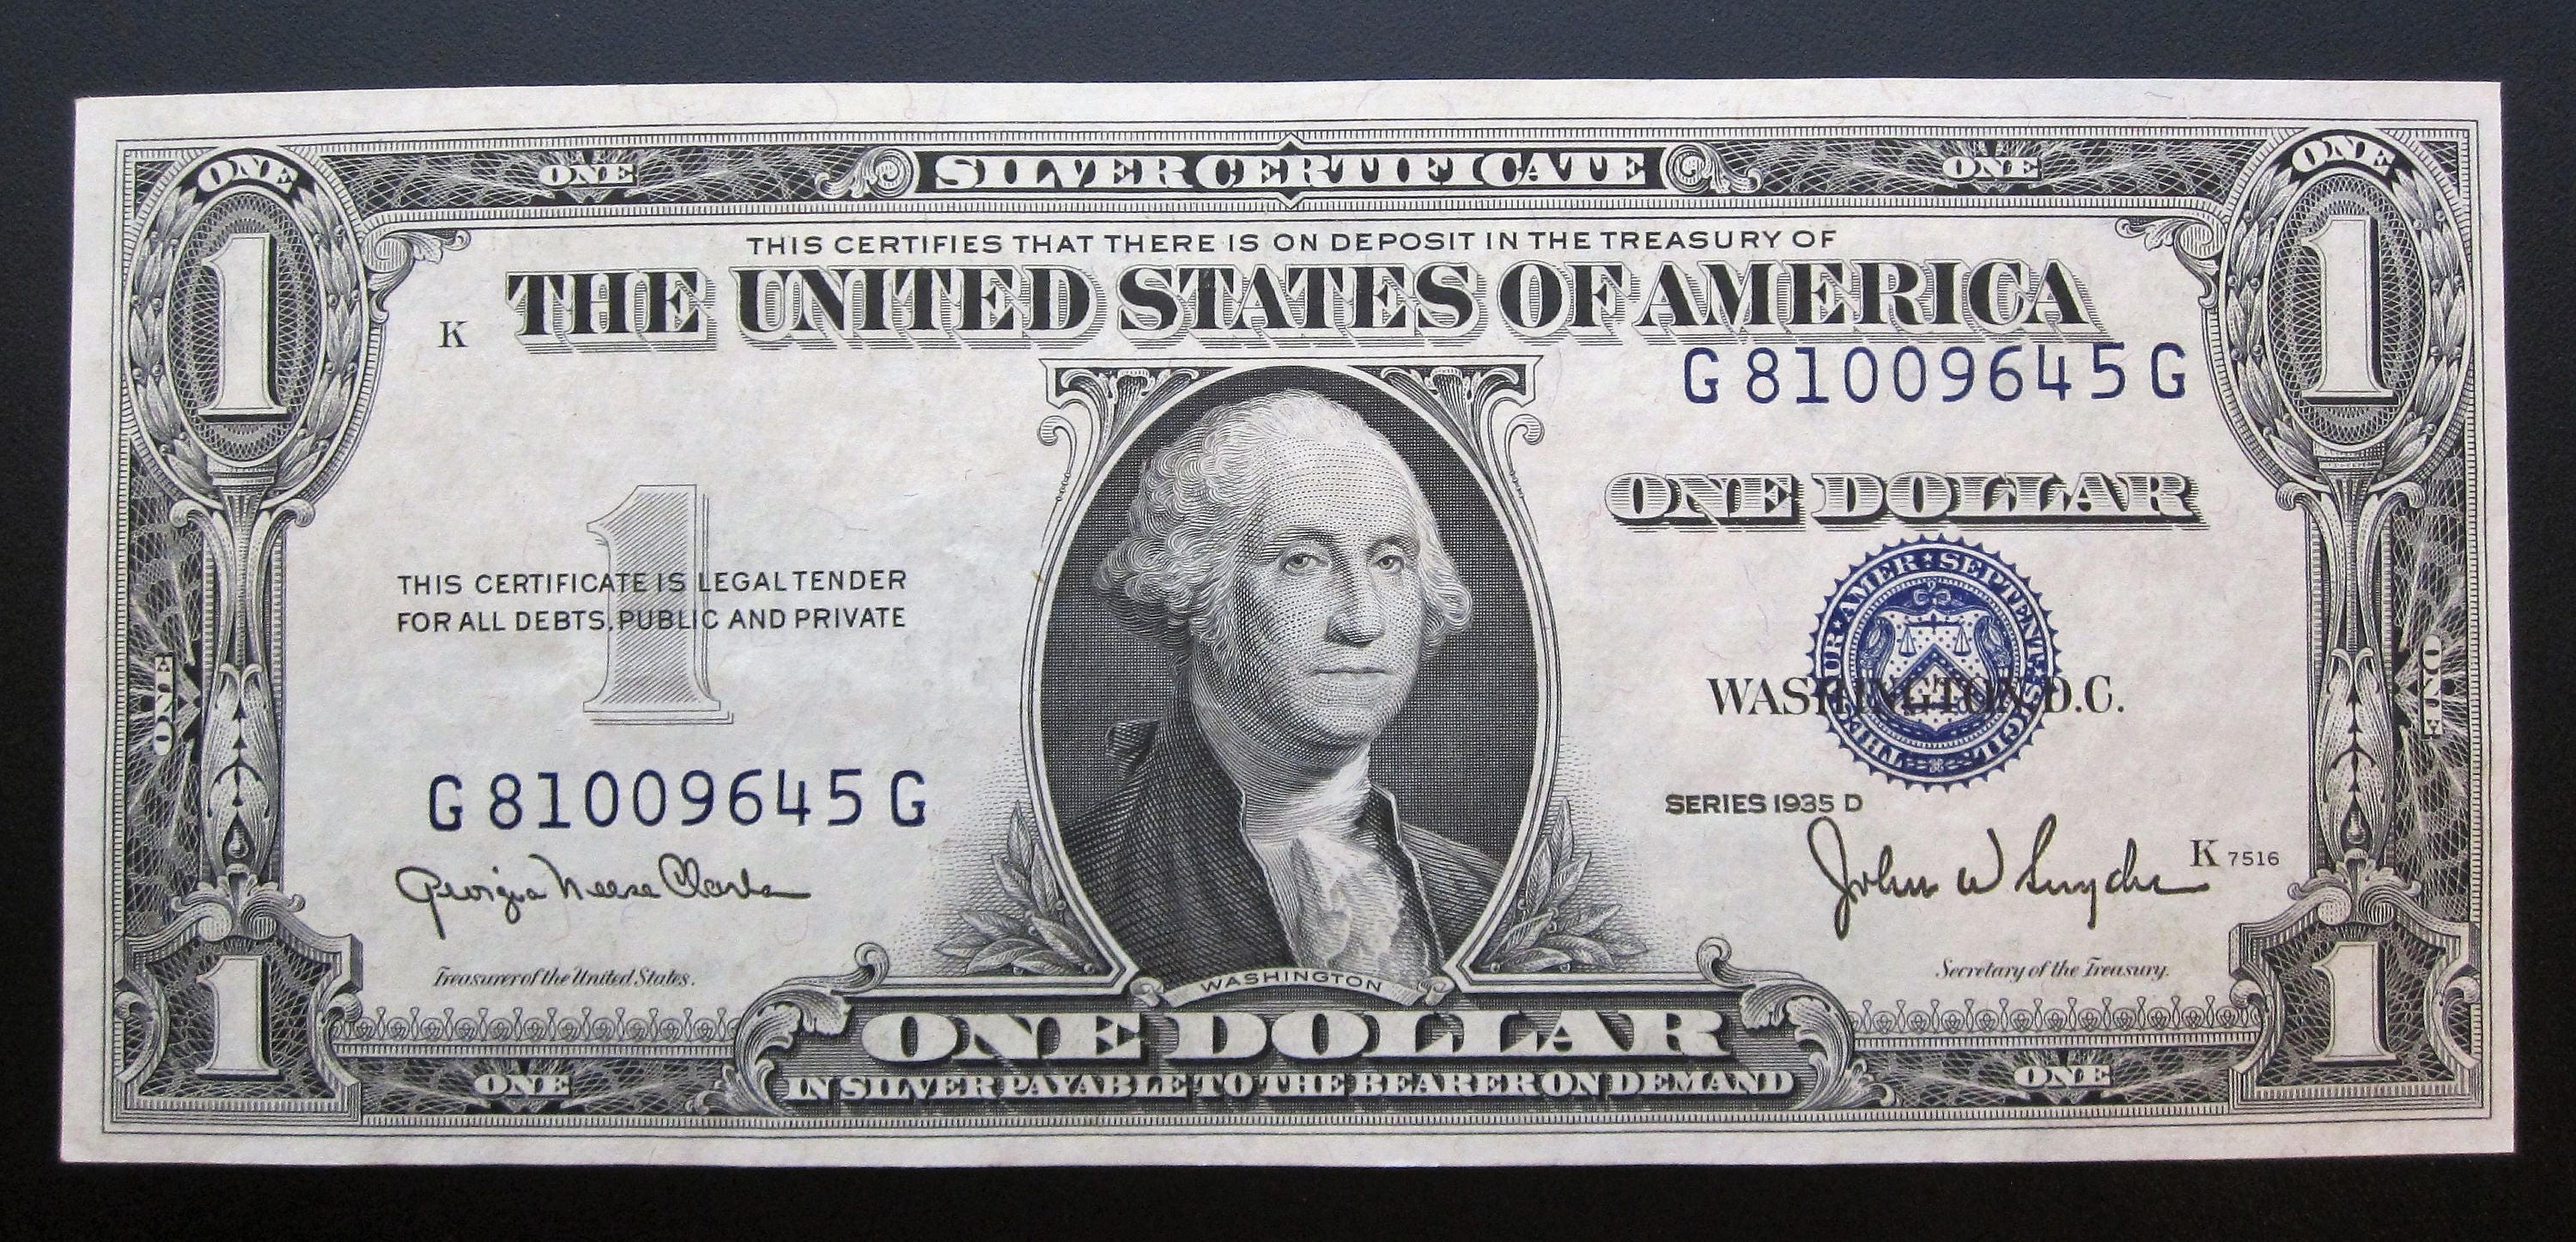 Series 1935 d one dollar silver certificate g 81009645 g description the item up for sale is a 1935 d one dollar silver certificate 1betcityfo Images